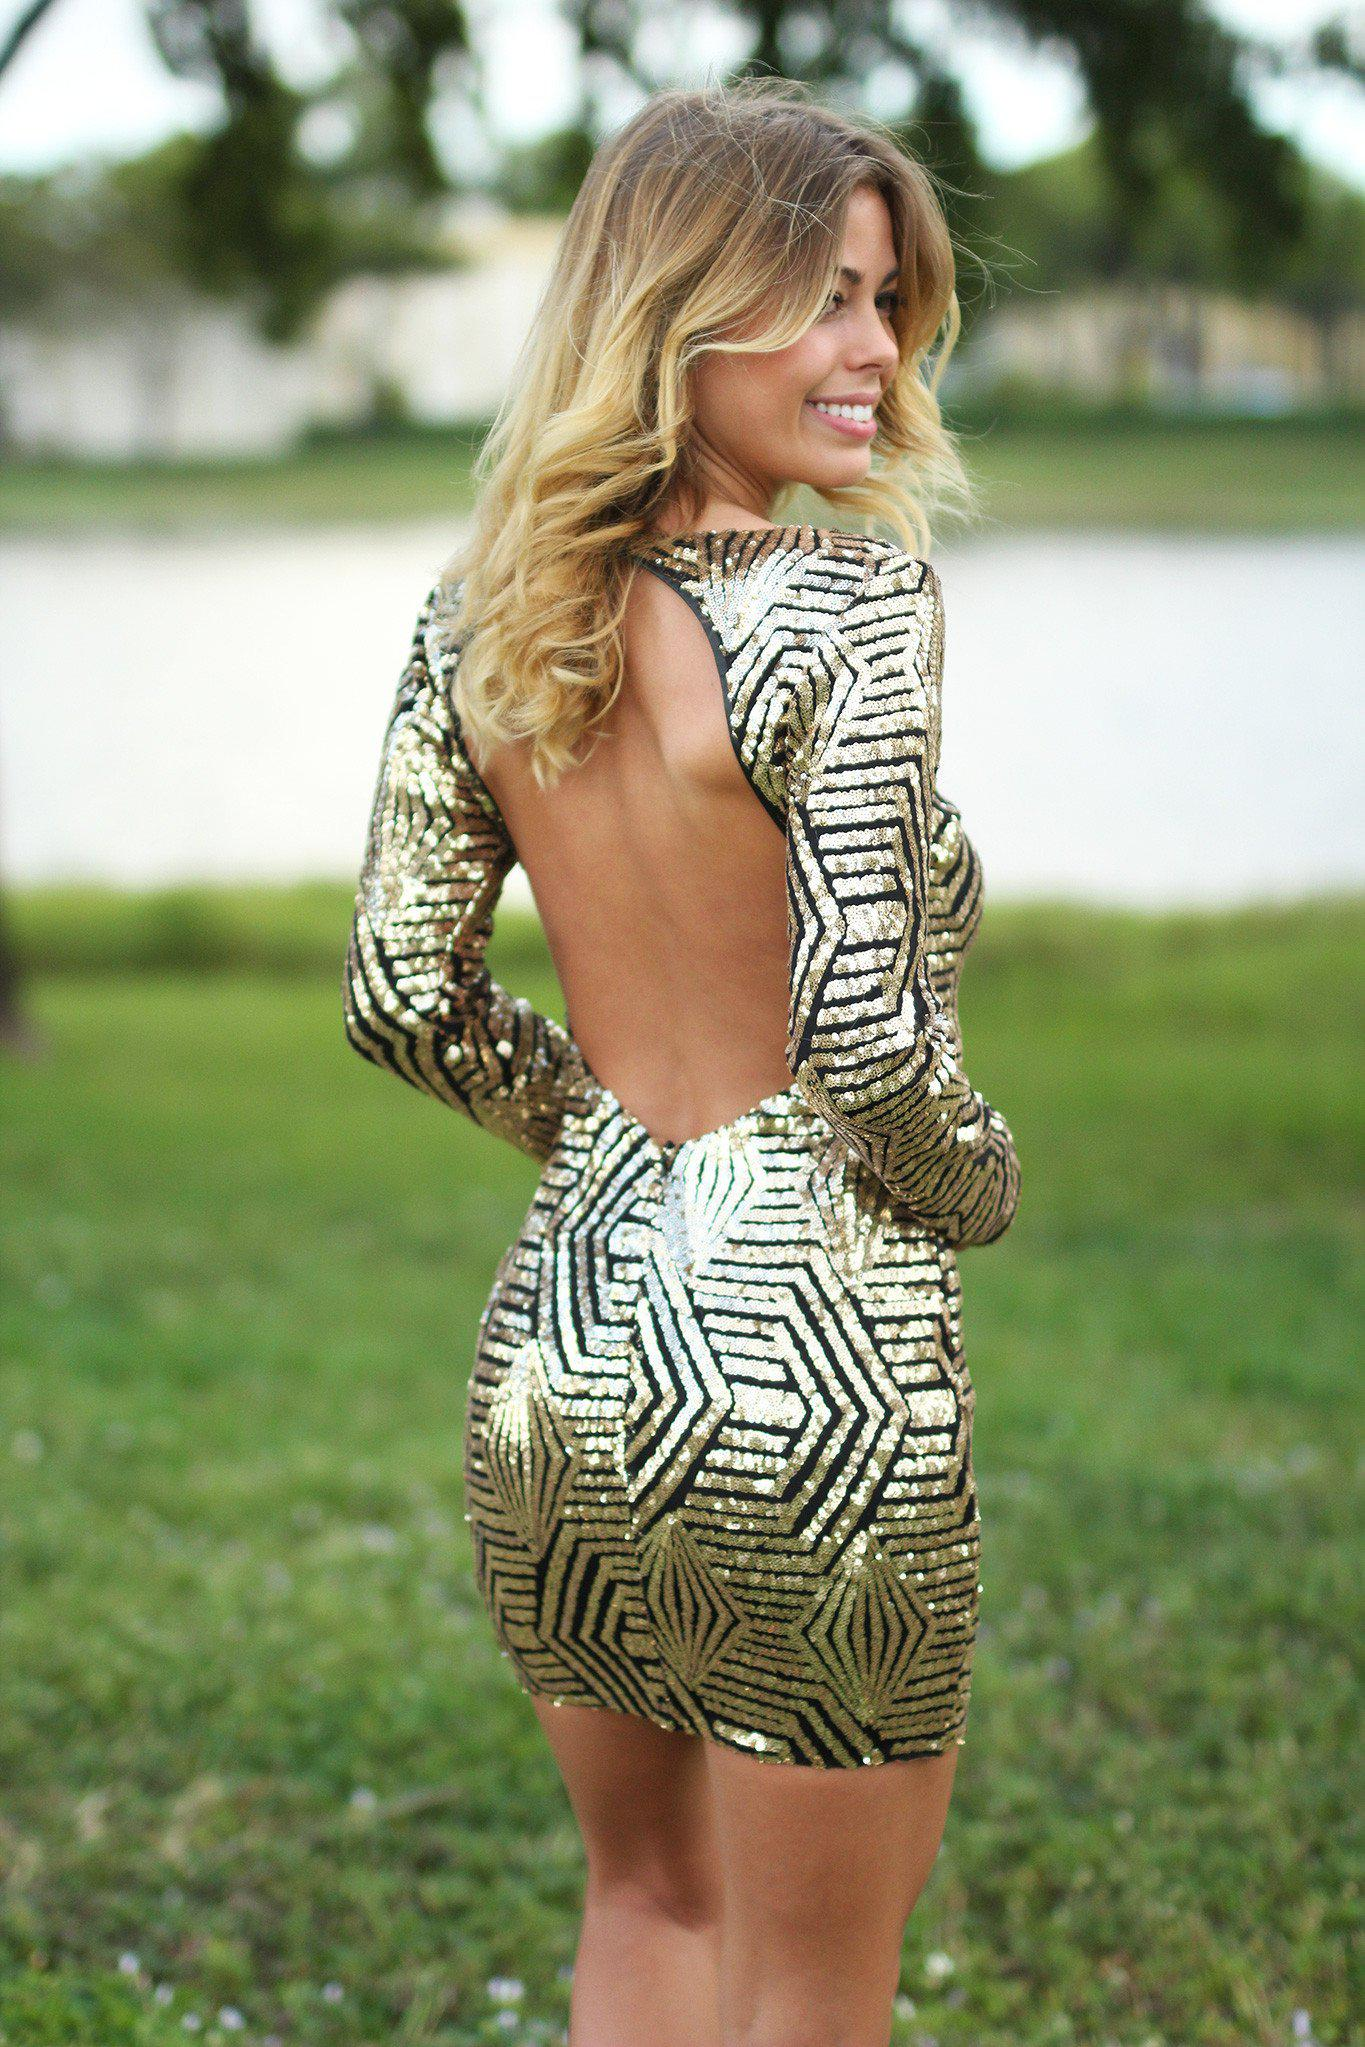 Gold and Black Sequined Short Dress with Open Back